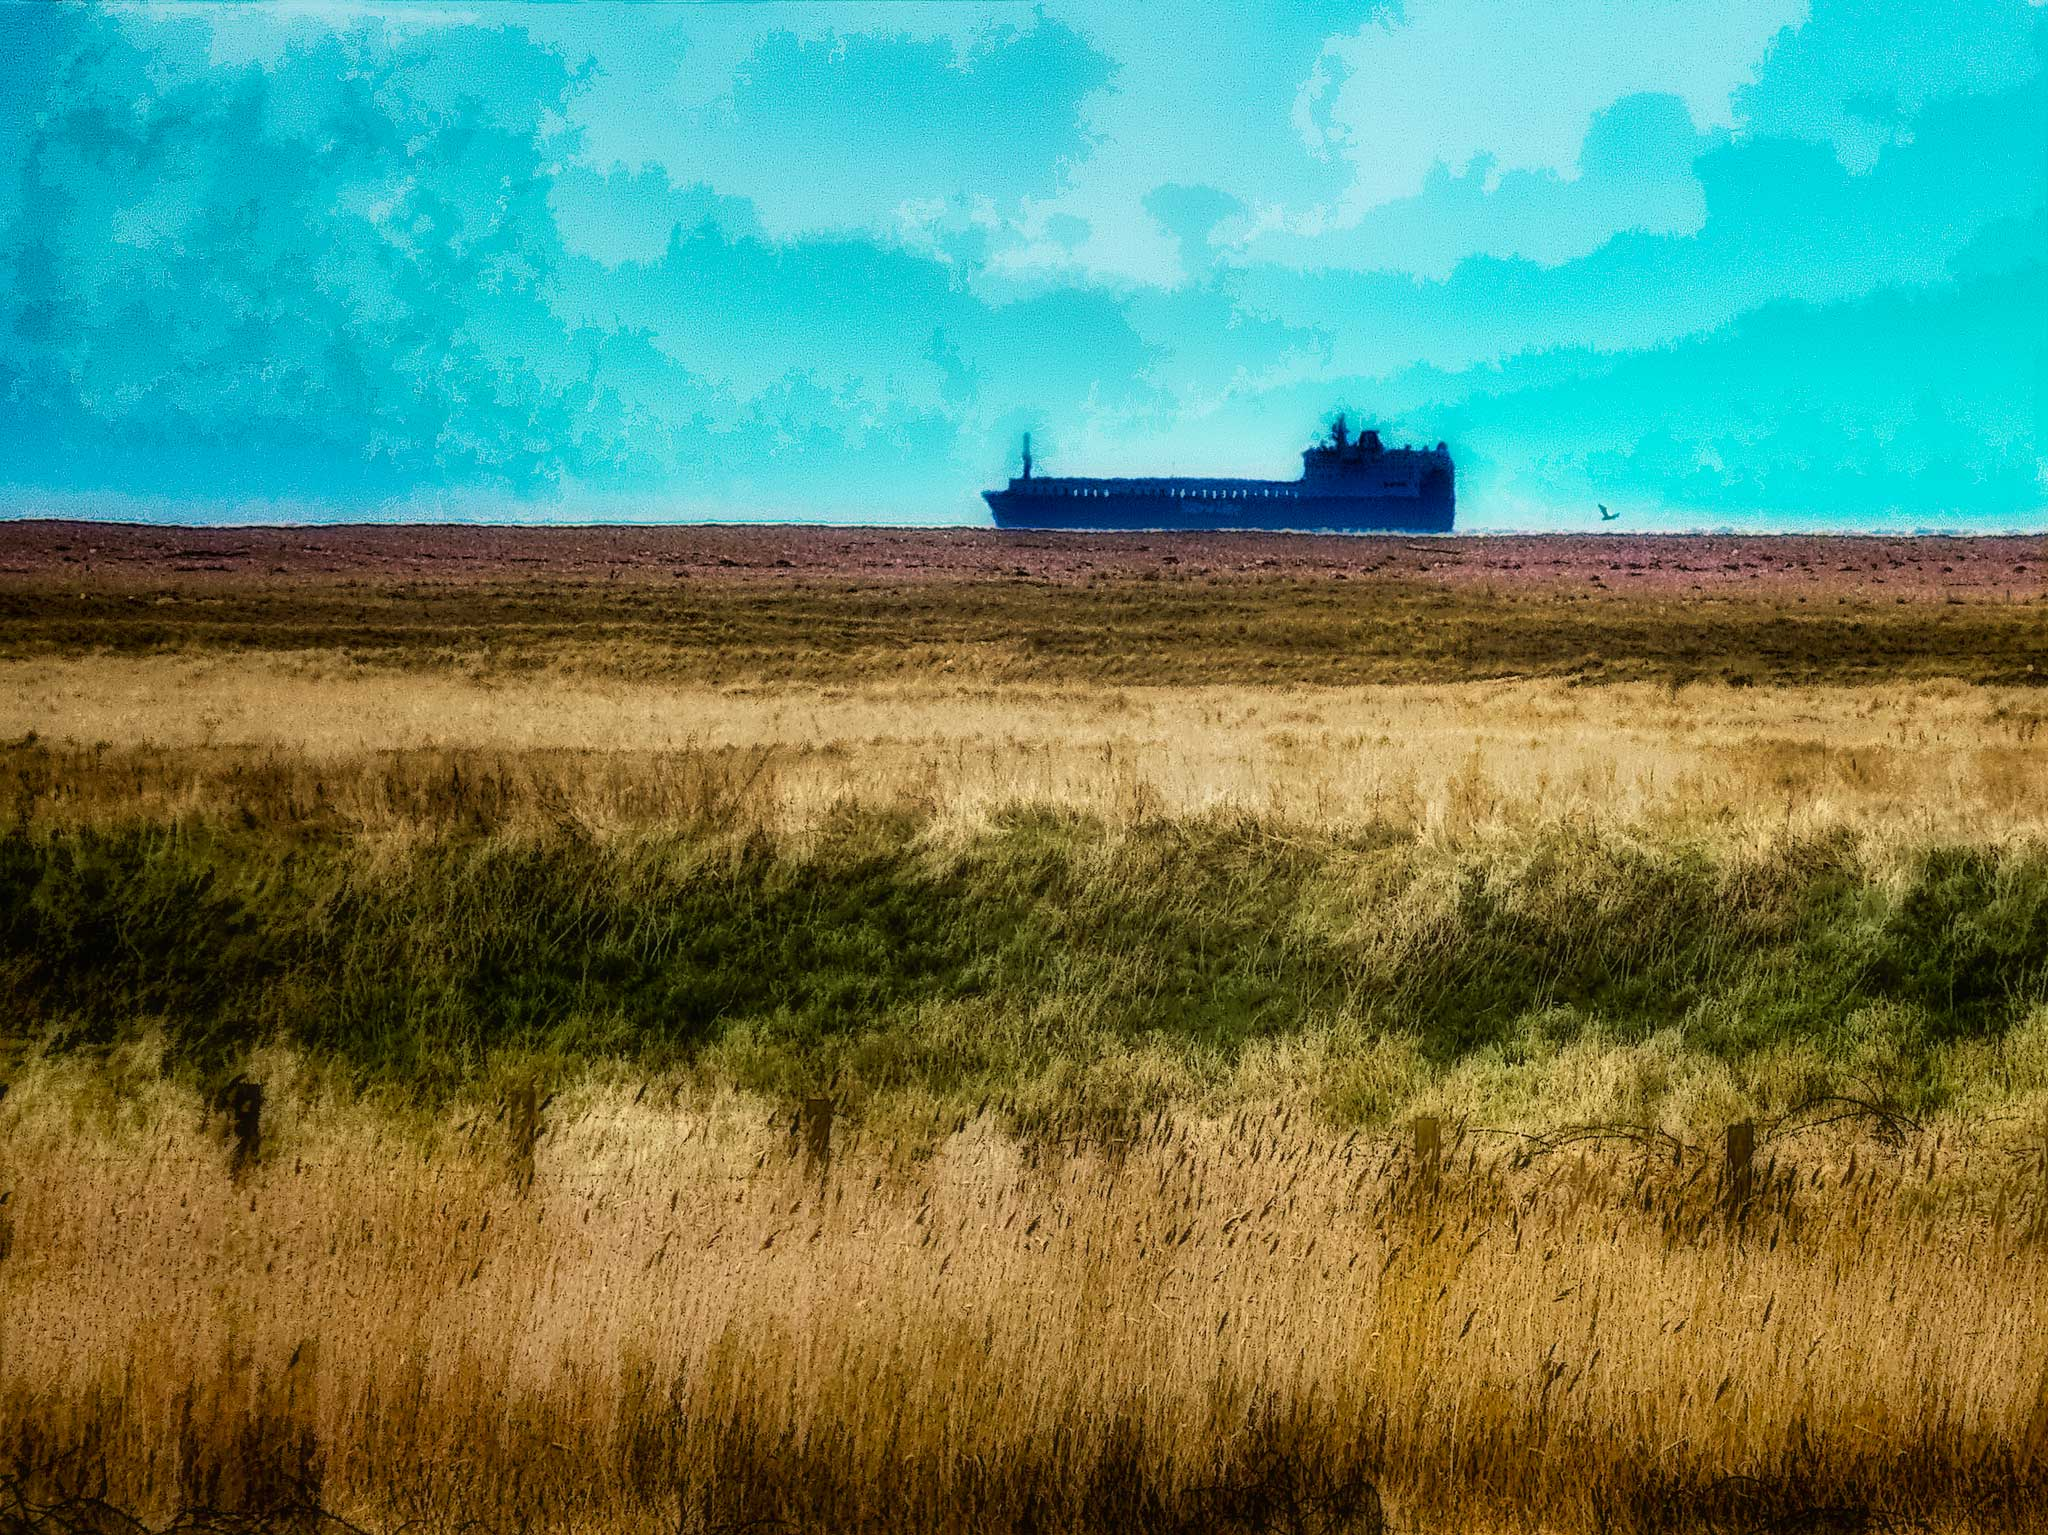 Photo: Sliding By The Ness A ship passes through the . . . day.  On the day in April 2006 that we visited the radio transmitters at Orford Ness, a ship was passing northward just offshore in the English Channel.  This photo was machine washed and tumble dried in #PhotoshopCC , #TopazDenoise3 , #TopazDetail5 and #TopazSimplify4 with some additional adjustment layers.  #Travel  #England  #OrfordNess  #Suffolk